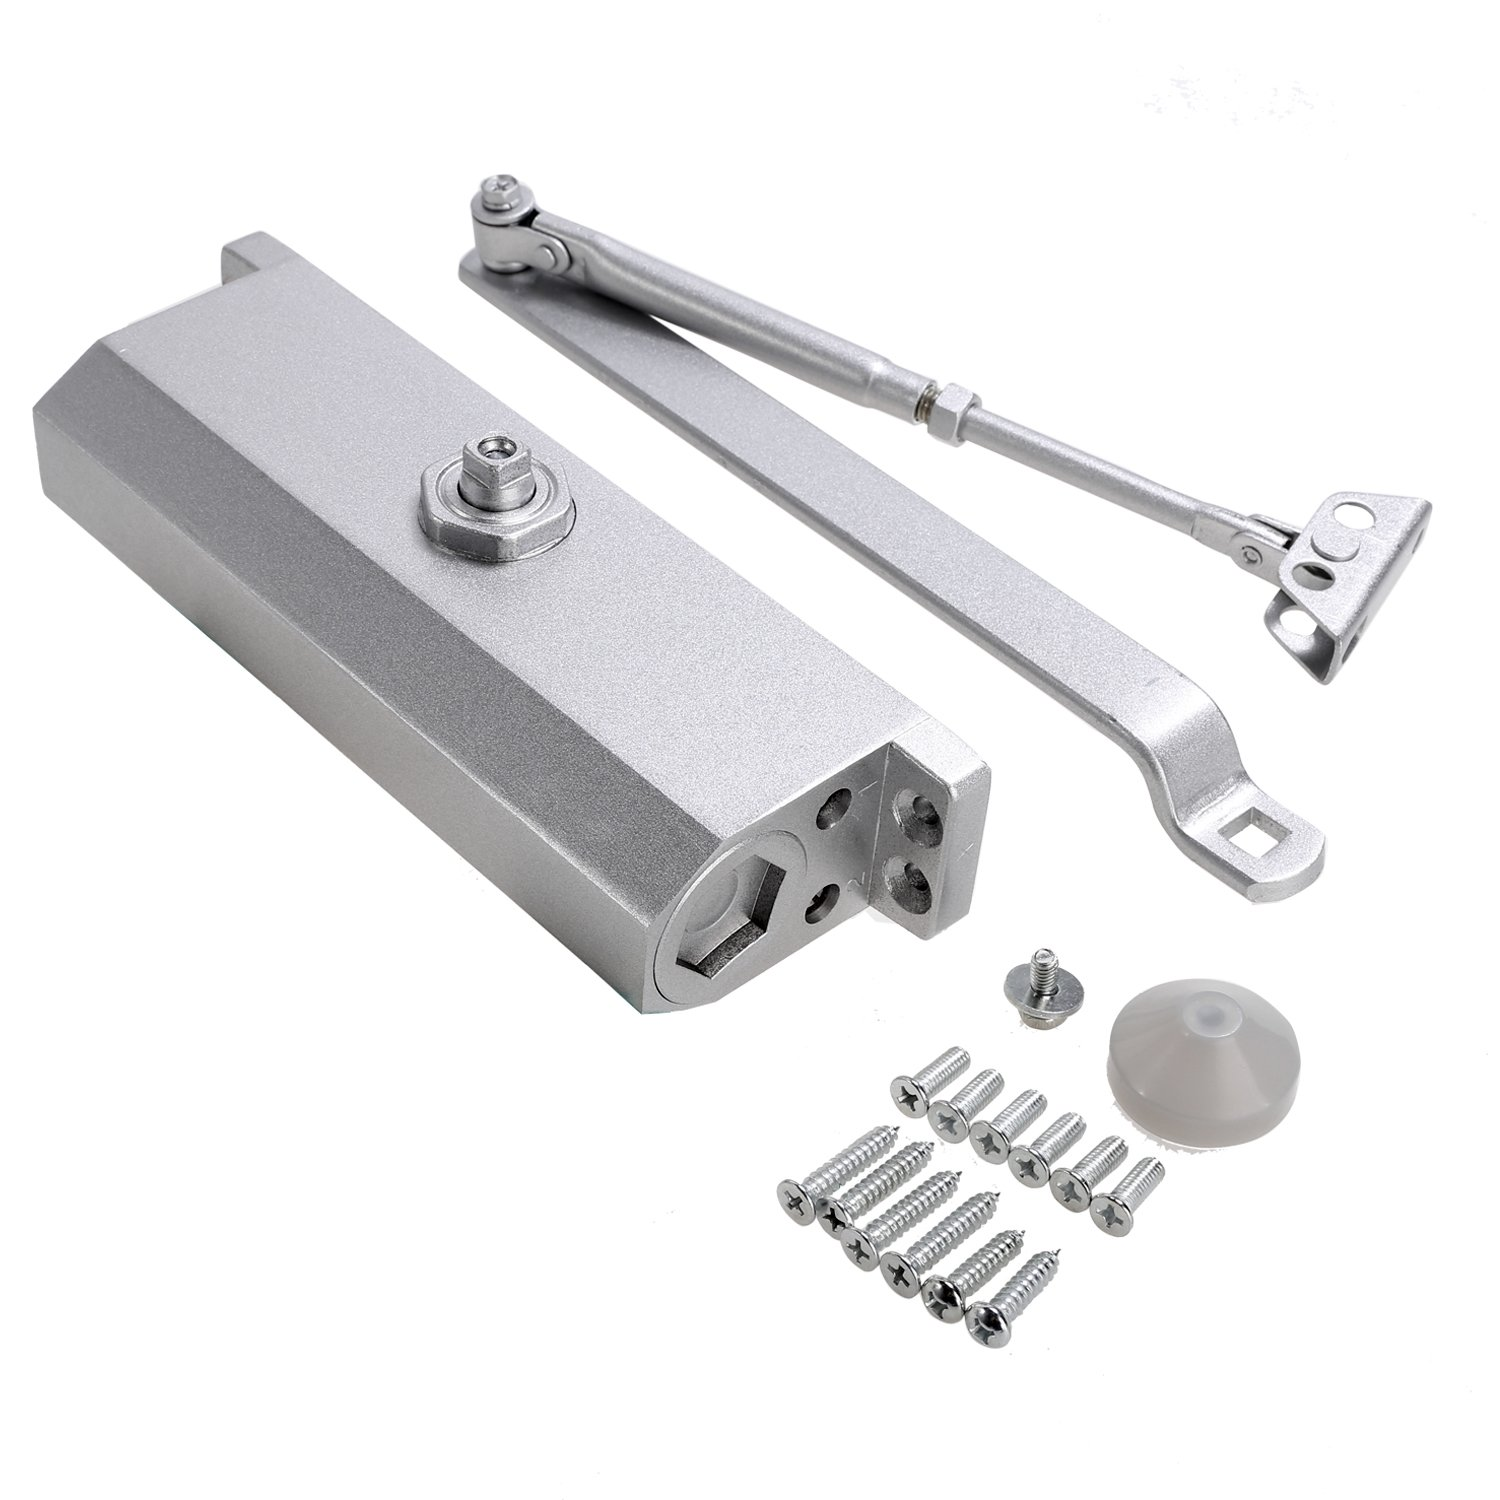 Homevol Huge Automatic Door Closer for Commercial and Residential Use Grade 1 Aluminum Alloy Door Close, for Larger Door Weight 187-265lbs